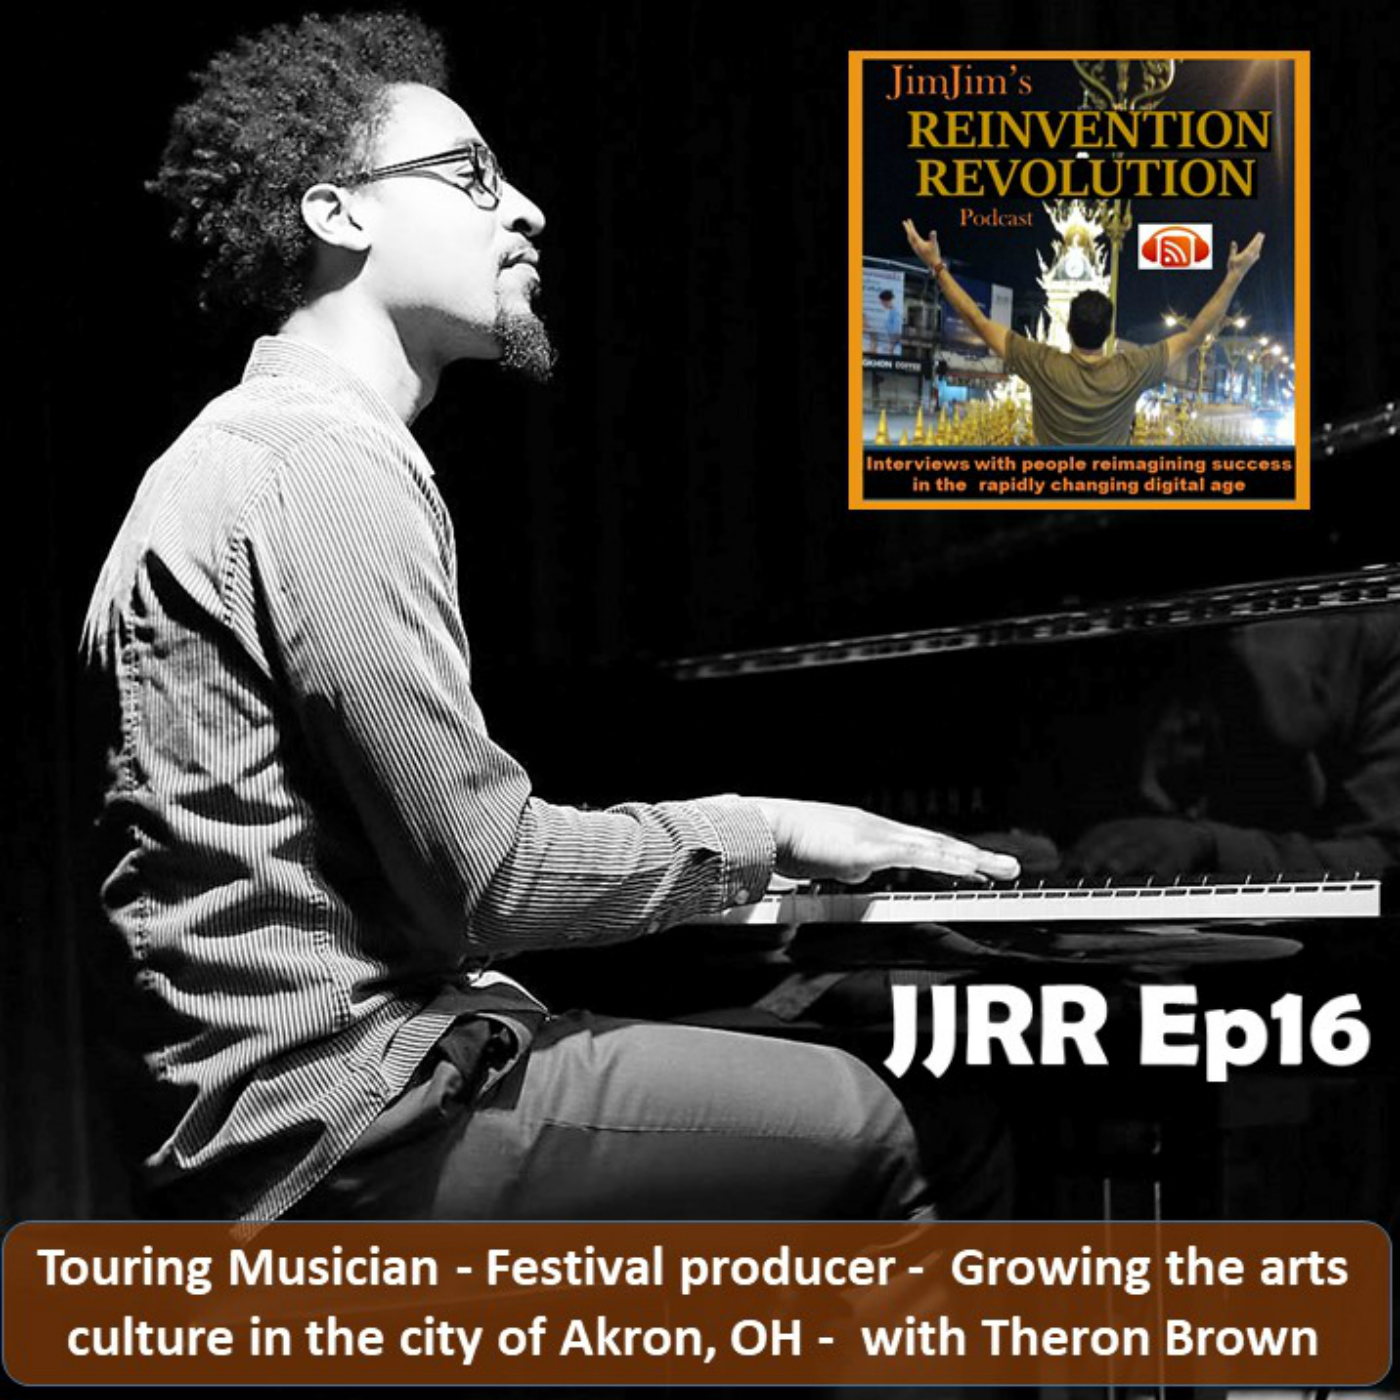 JJRR Ep16 Music festival producing – Growing the arts cutlure in Akron, OH – with touring musician / actor Theron Brown